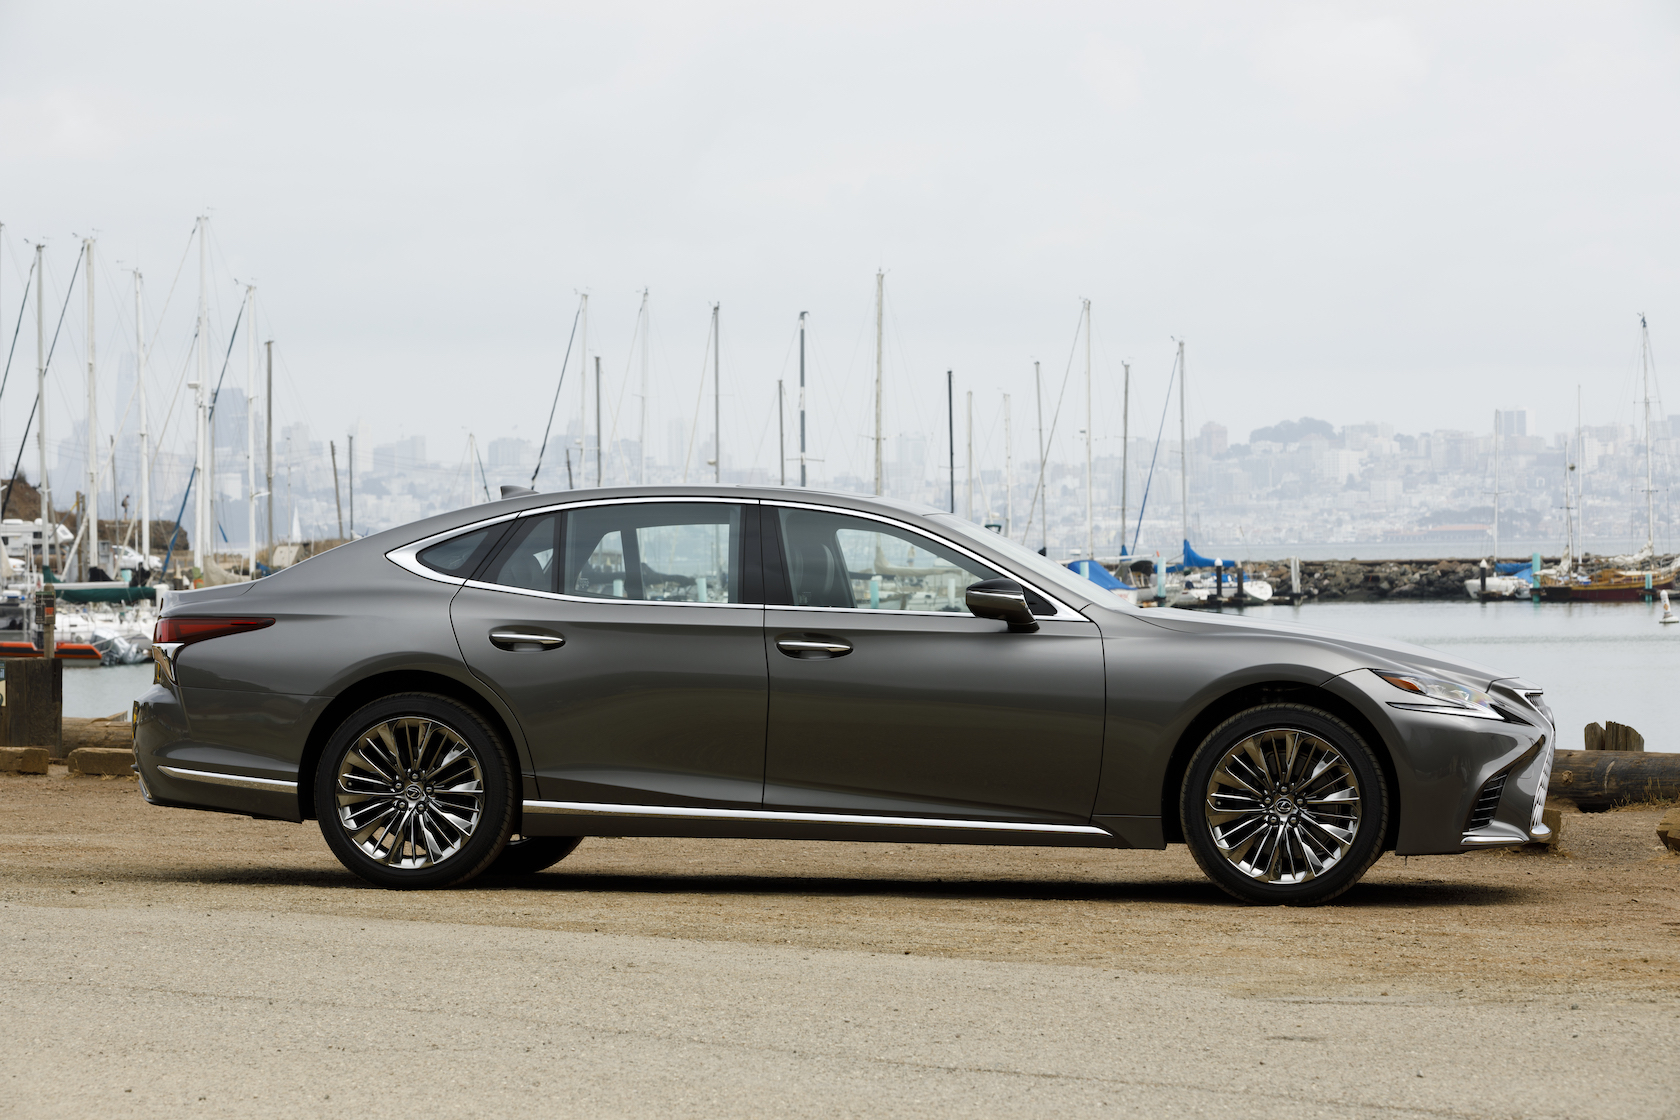 2018 Lexus Ls 500 Imperial Dreams Automotive Rhythms